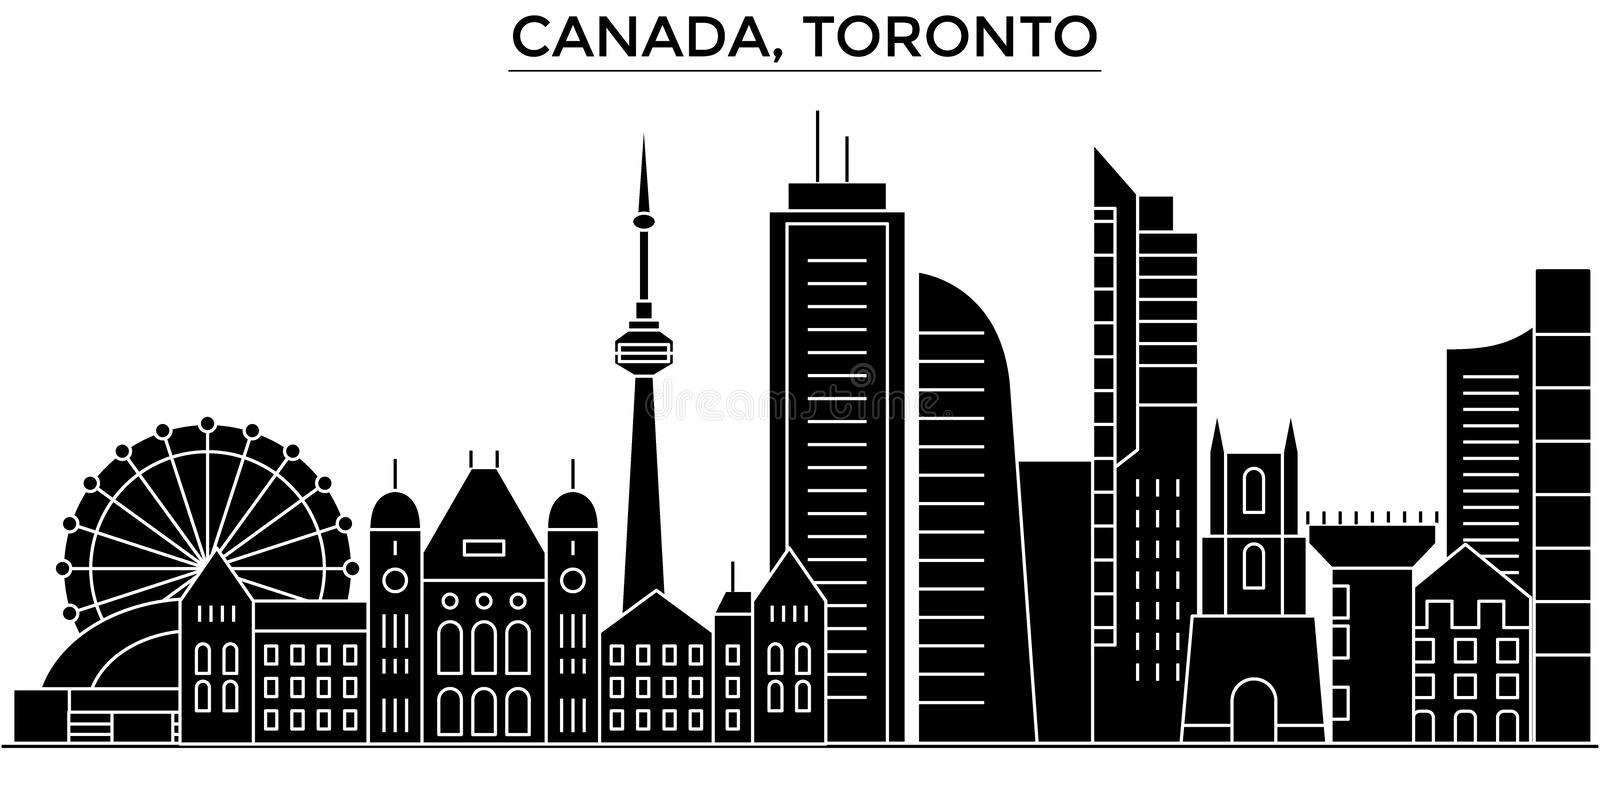 Canada, Toronto architecture vector city skyline, travel cityscape with landmarks, buildings, isolated sights on stock illustration